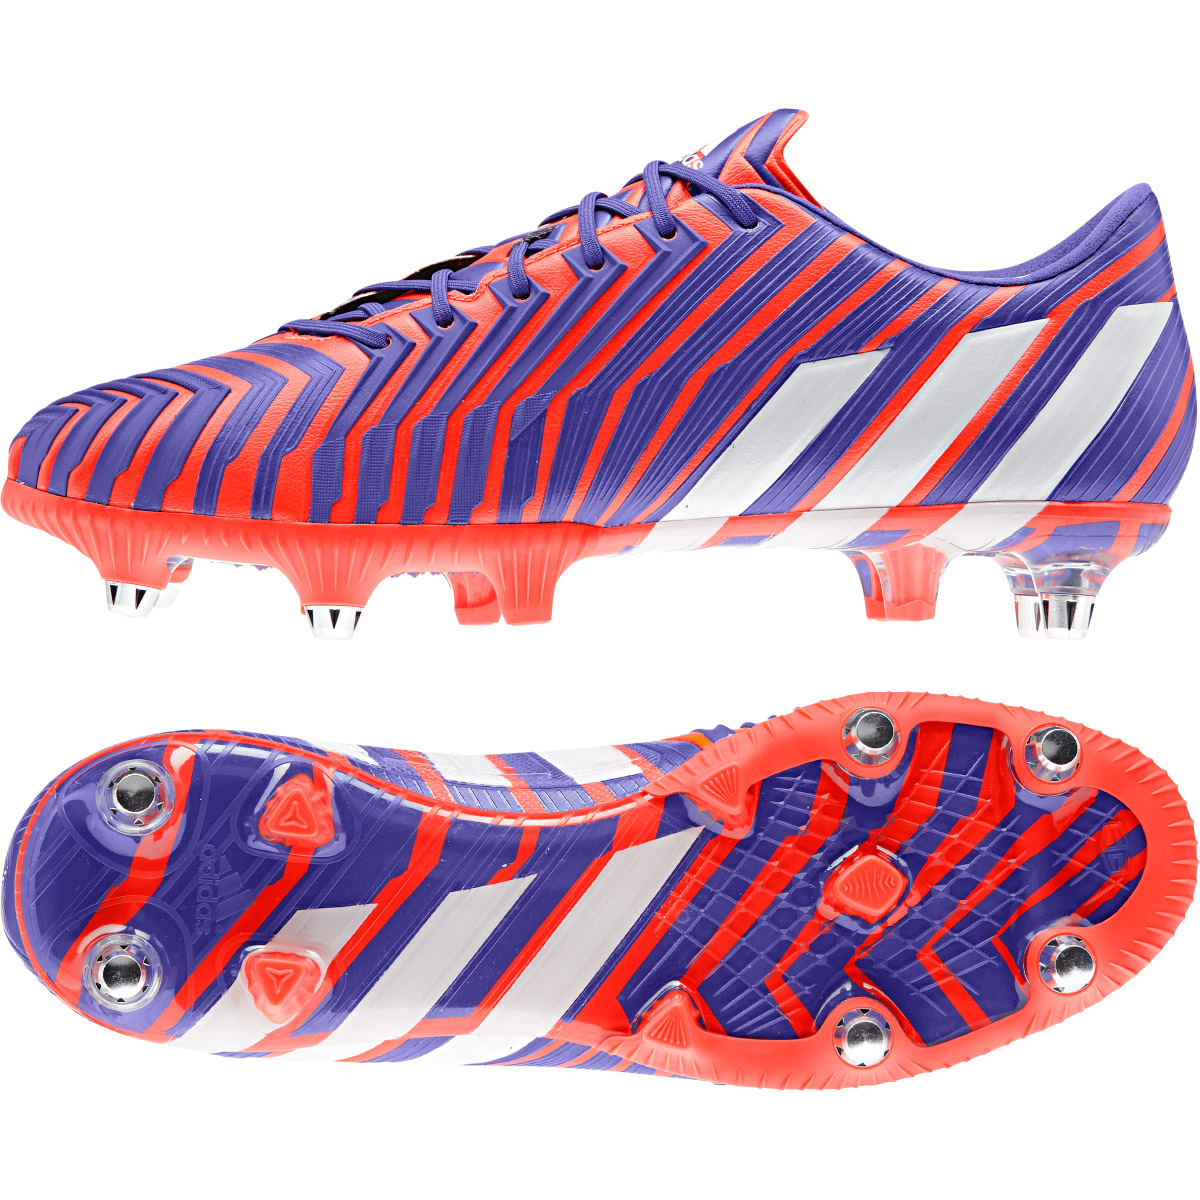 Adidas Predator Instinct Soft Ground Football Boots Red